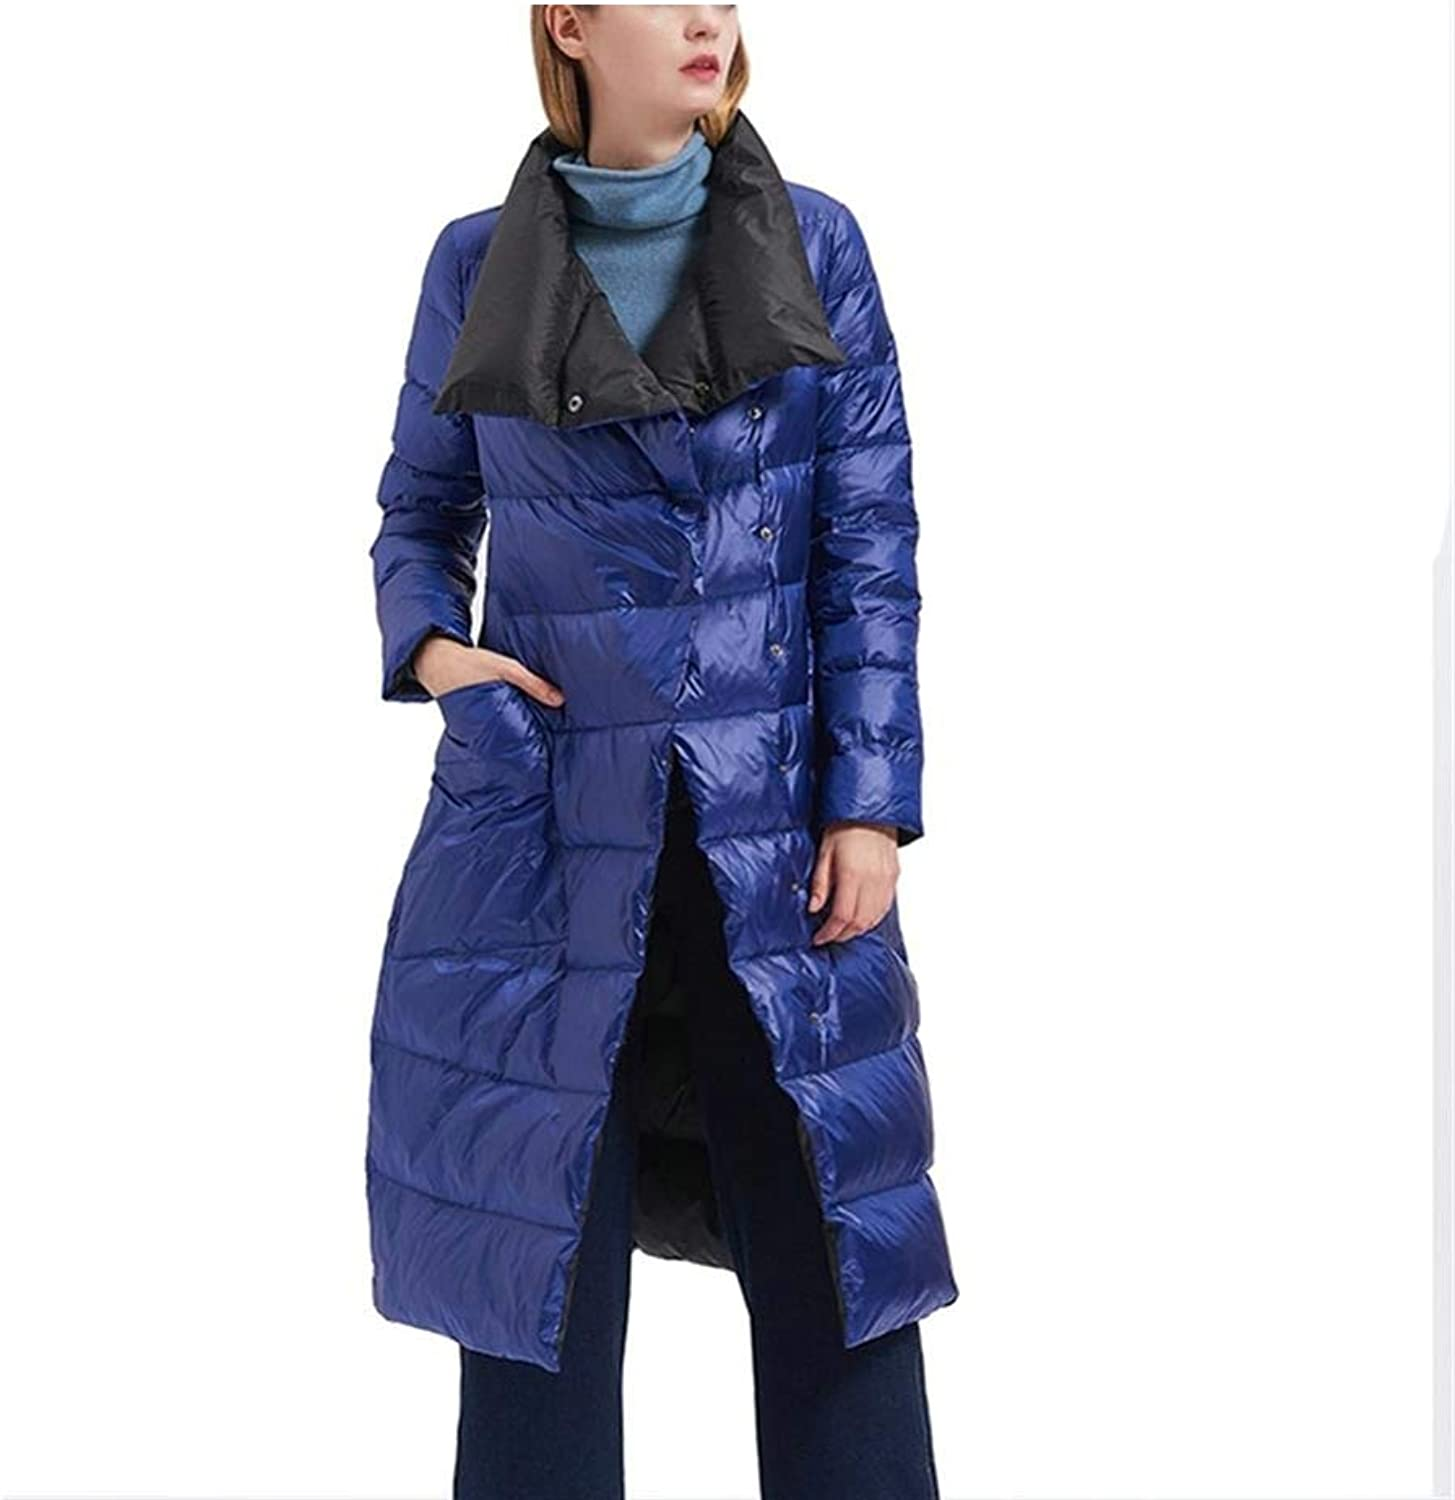 Dotoo 95% White Duck Down Women's Down Jacket Long DoubleSided Slim Slimming Warm